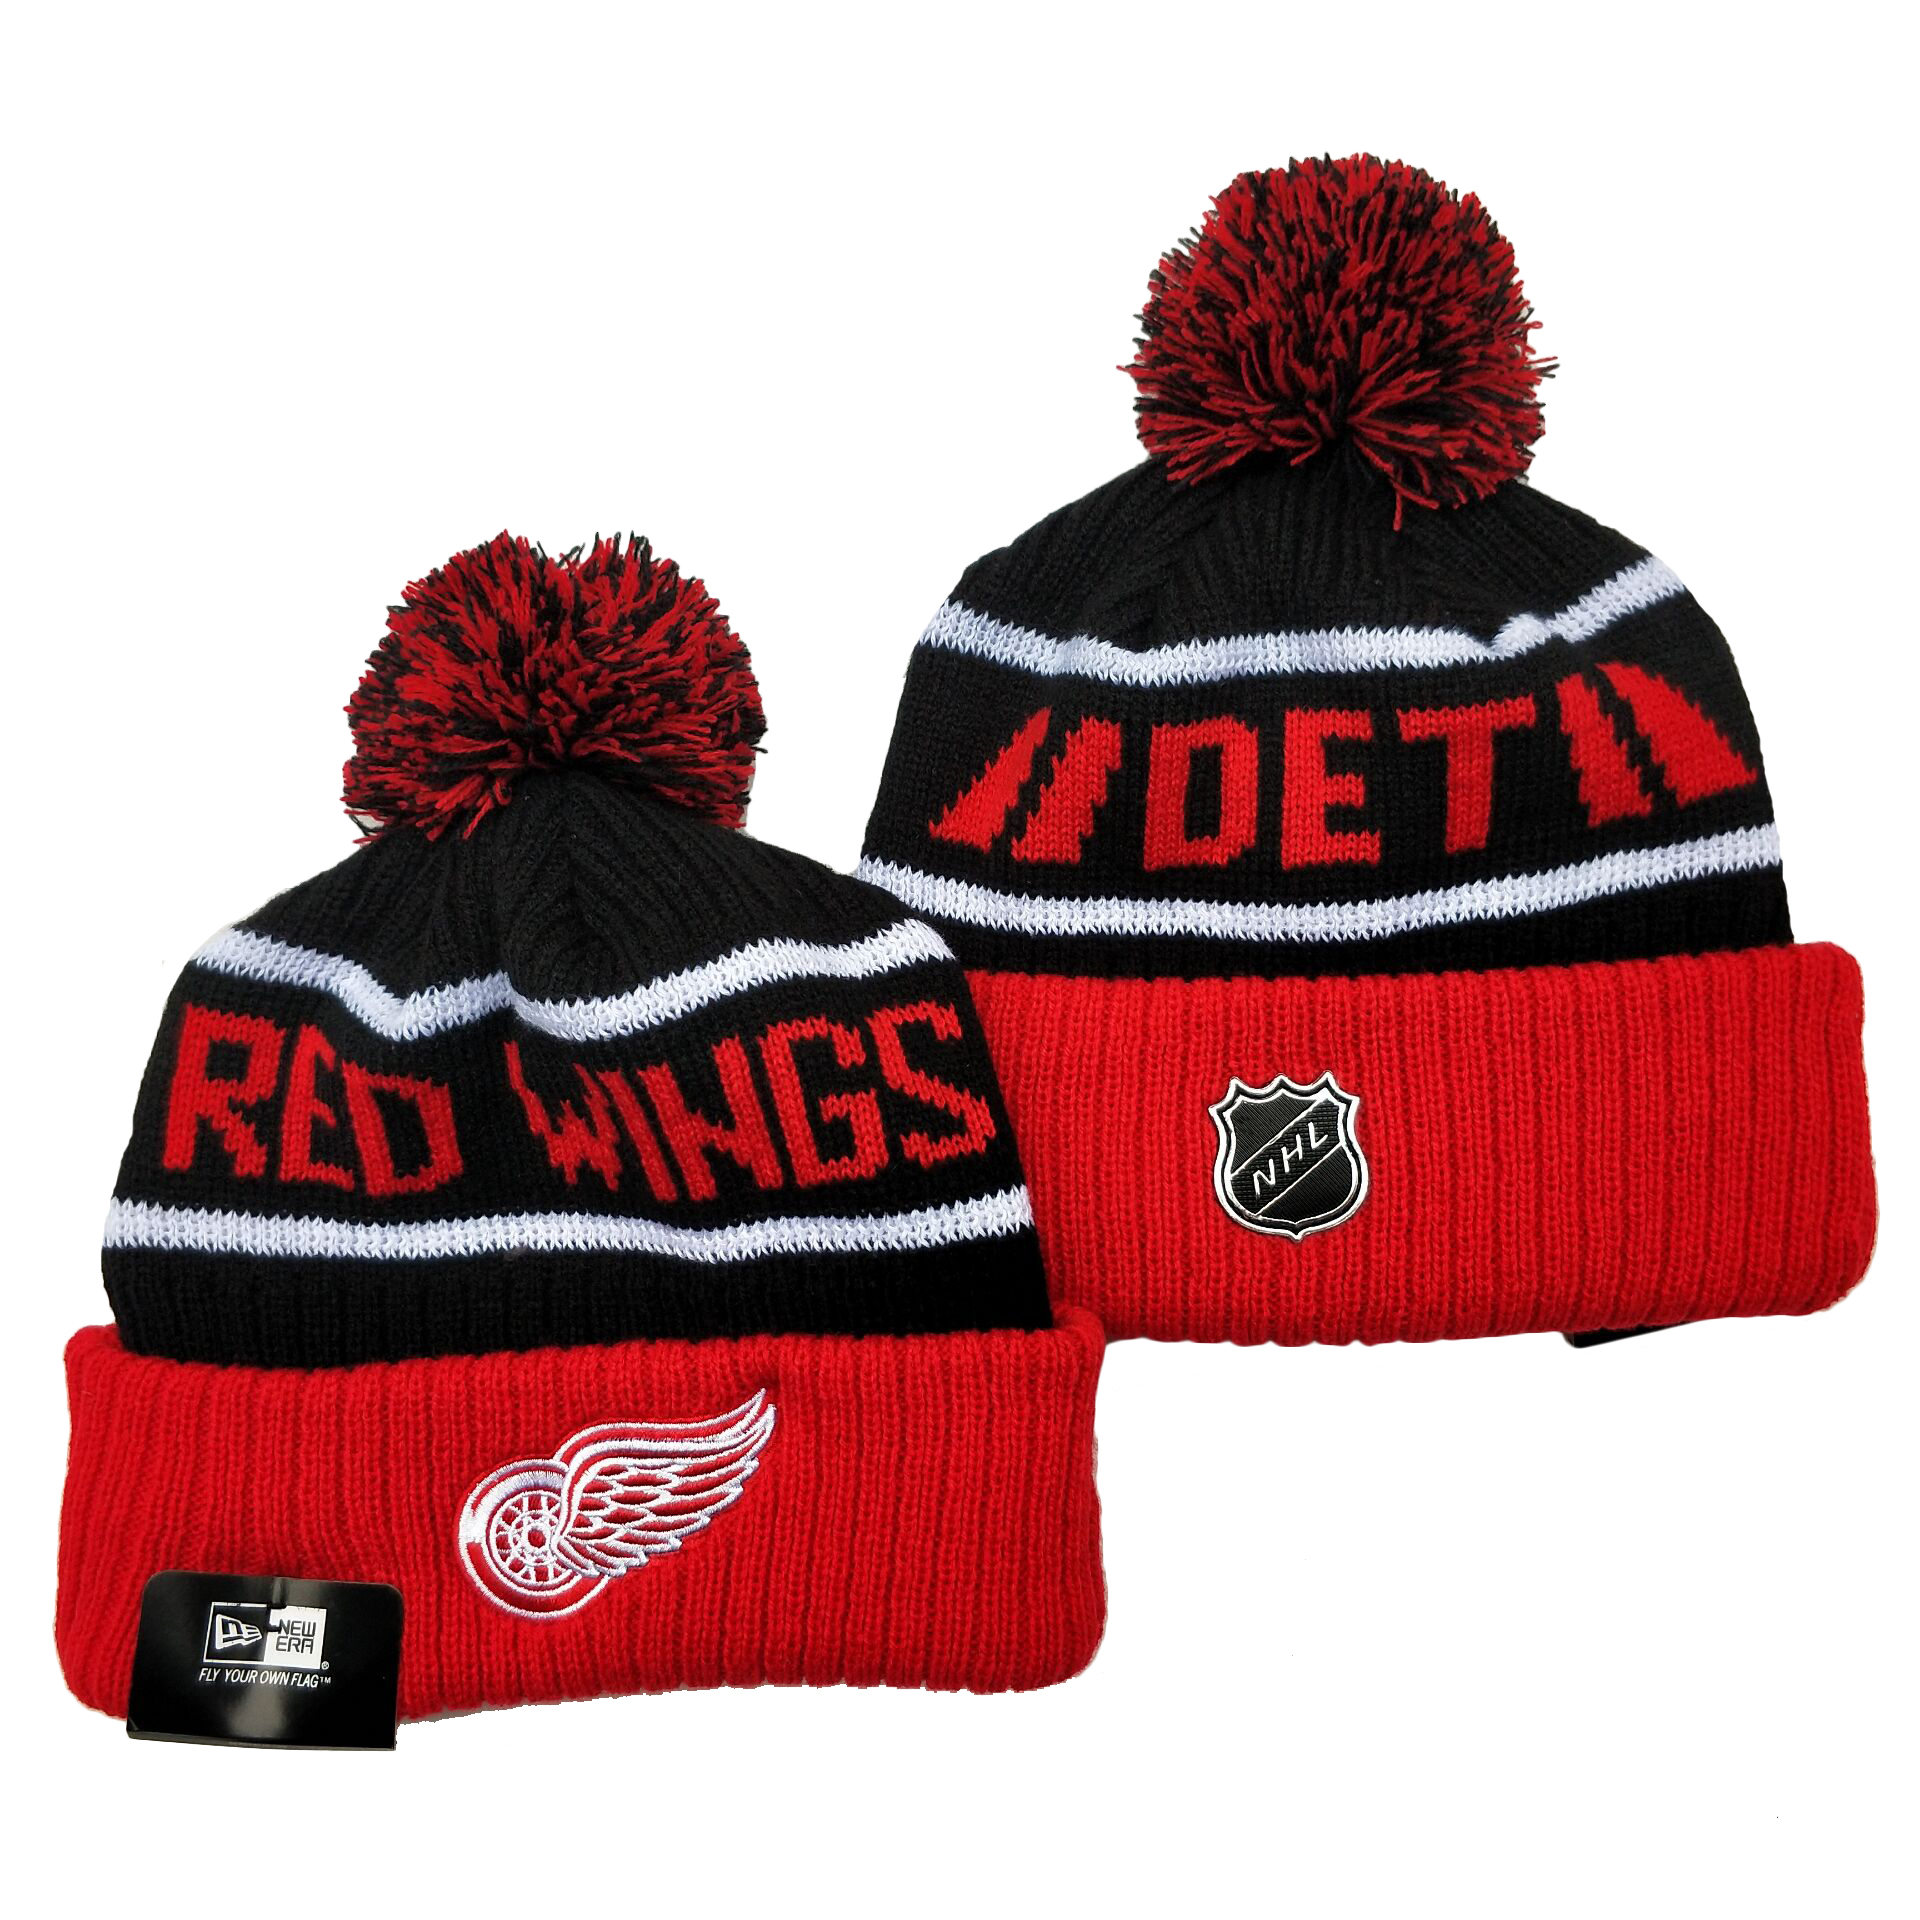 Red Wings Team Logo Red Black Pom Cuffed Knit Hat YD